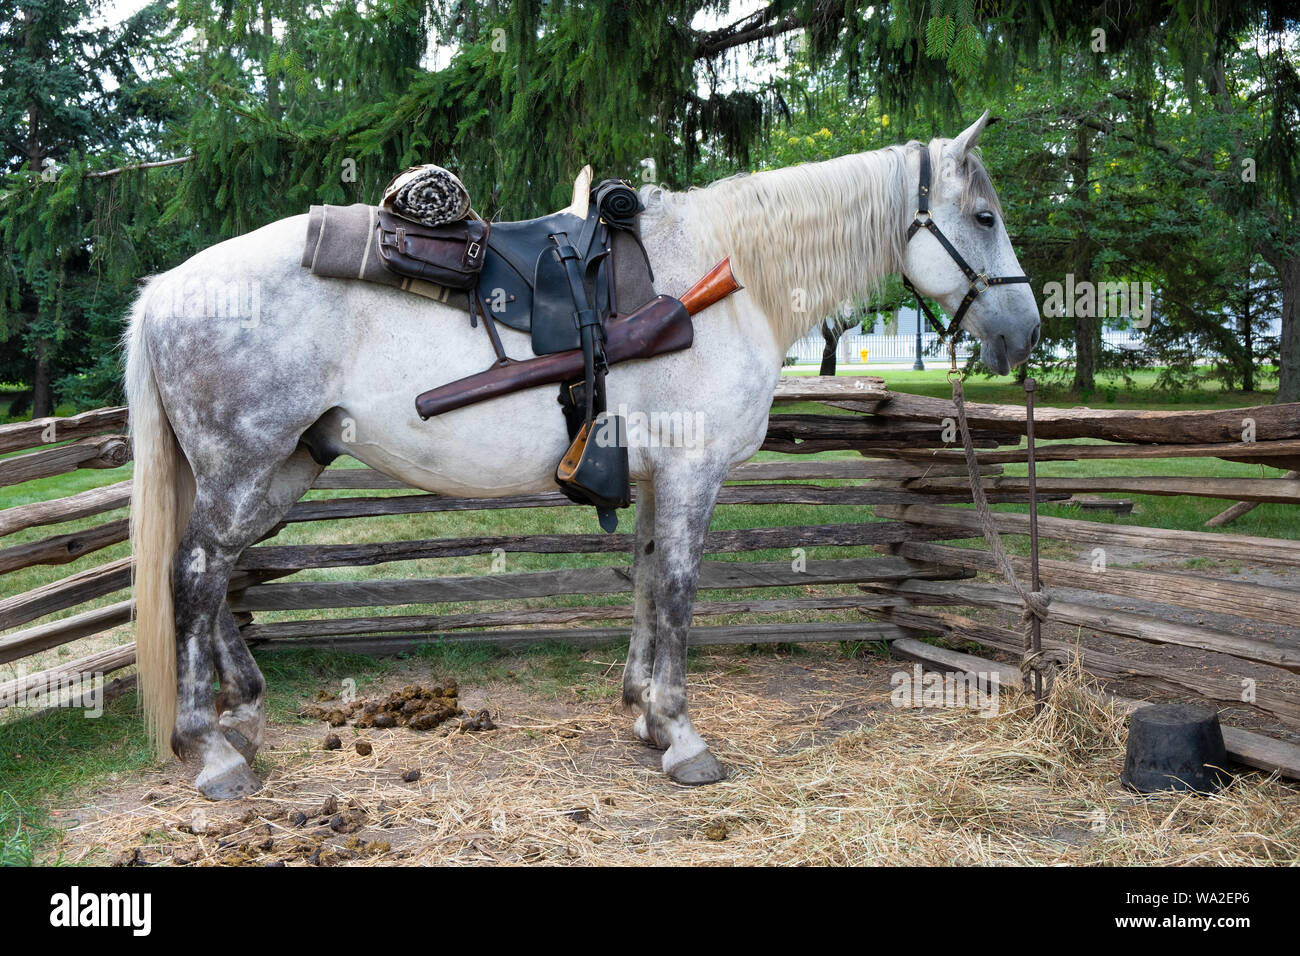 Dapple Gray Horse High Resolution Stock Photography And Images Alamy